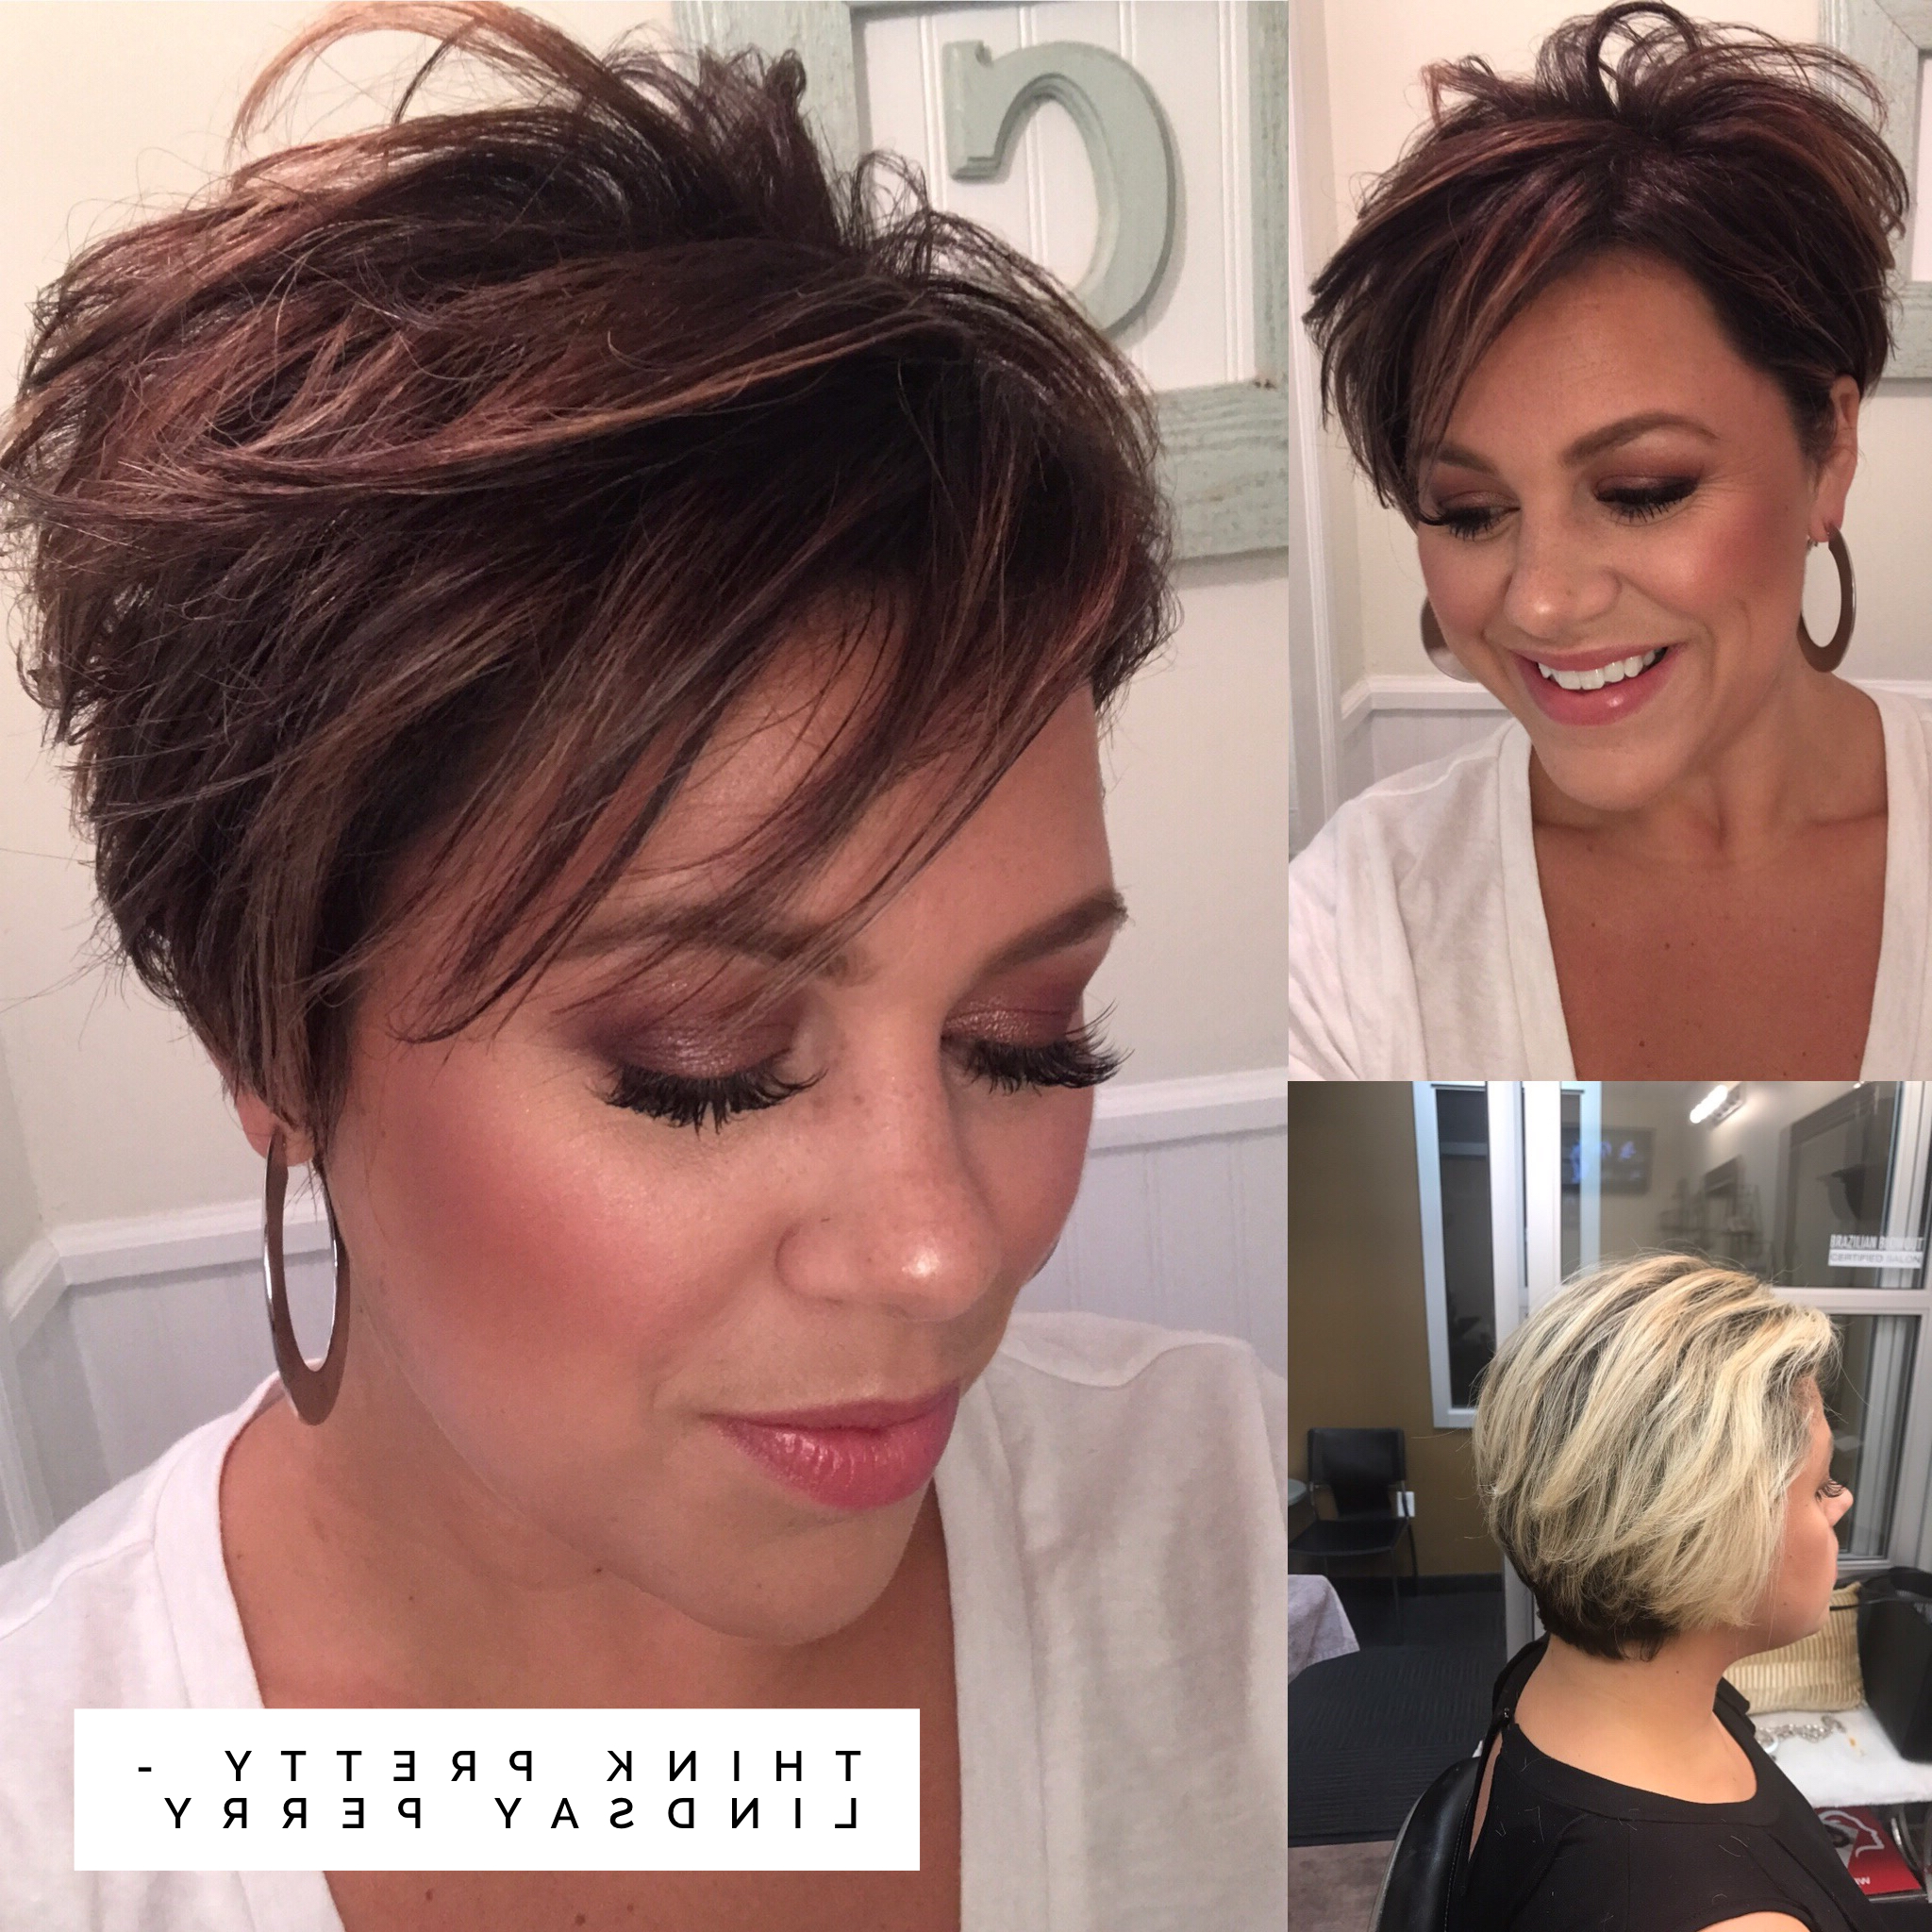 Fall Hair, Short Hair, Pixie Haircut, Pixie, Short Fall Hair Pertaining To Current Short Side Swept Pixie Haircuts With Caramel Highlights (Gallery 5 of 20)